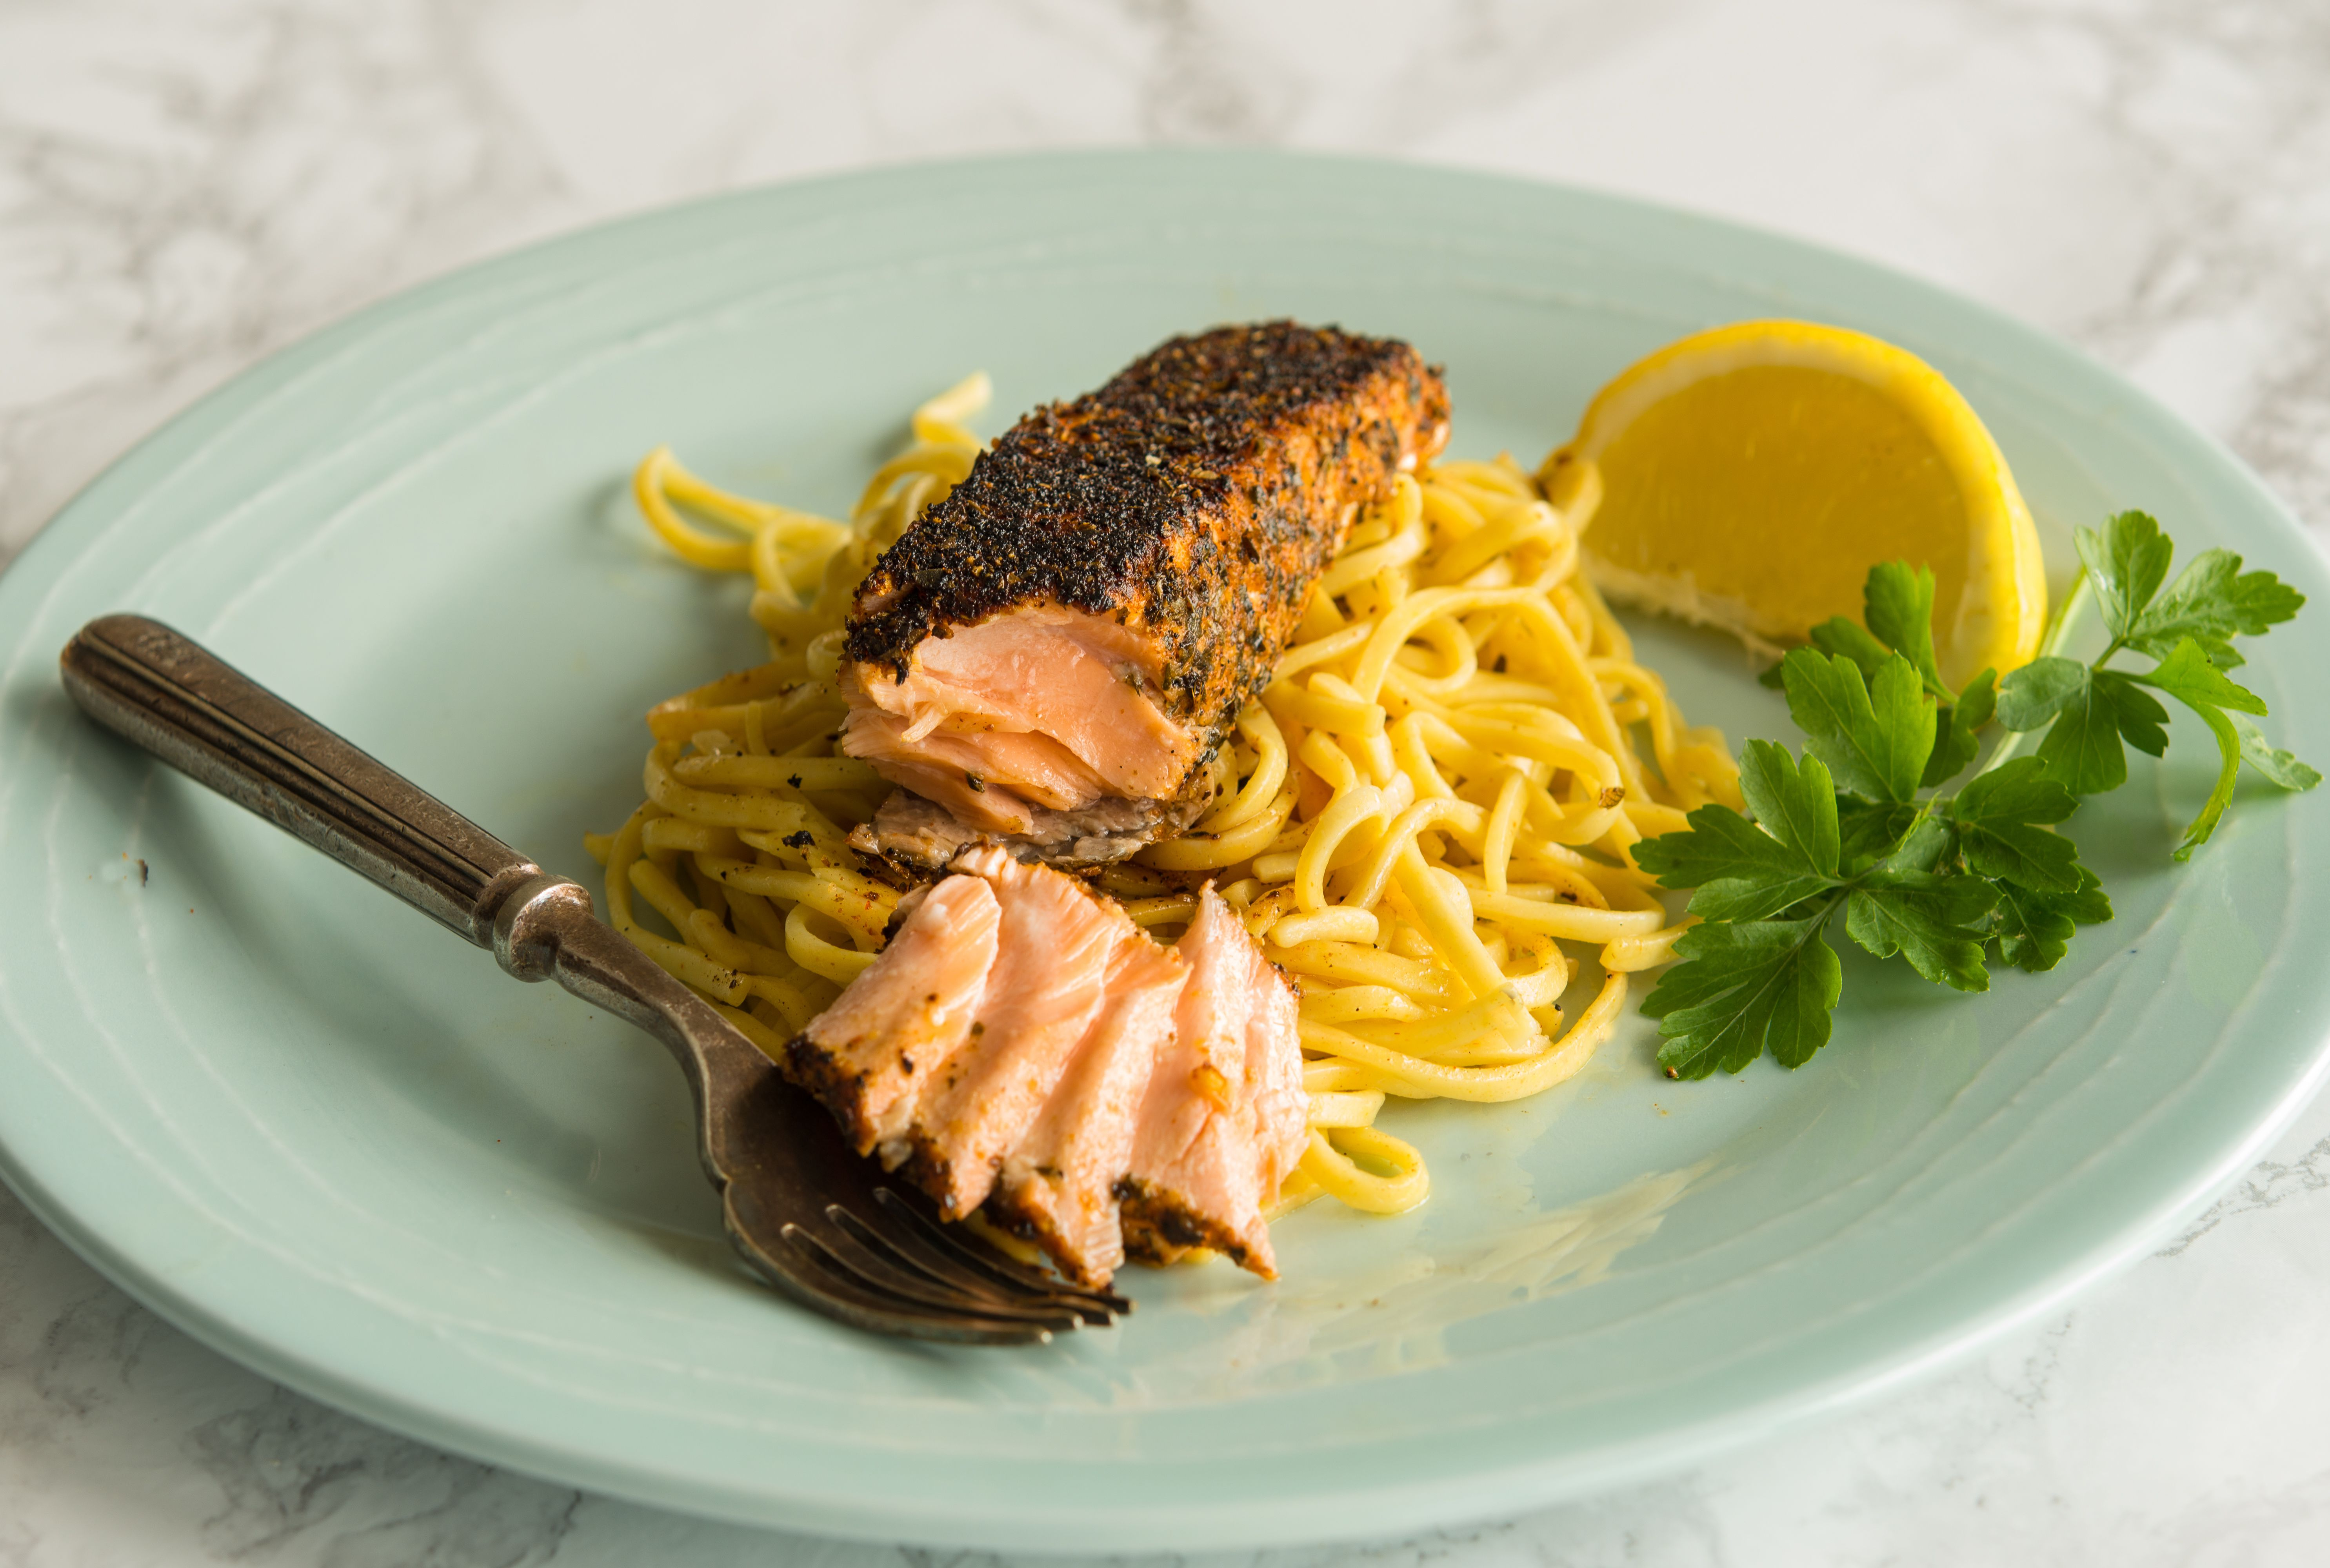 An Easy Homemade Blackening Seasoning Gives Salmon Big Flavor